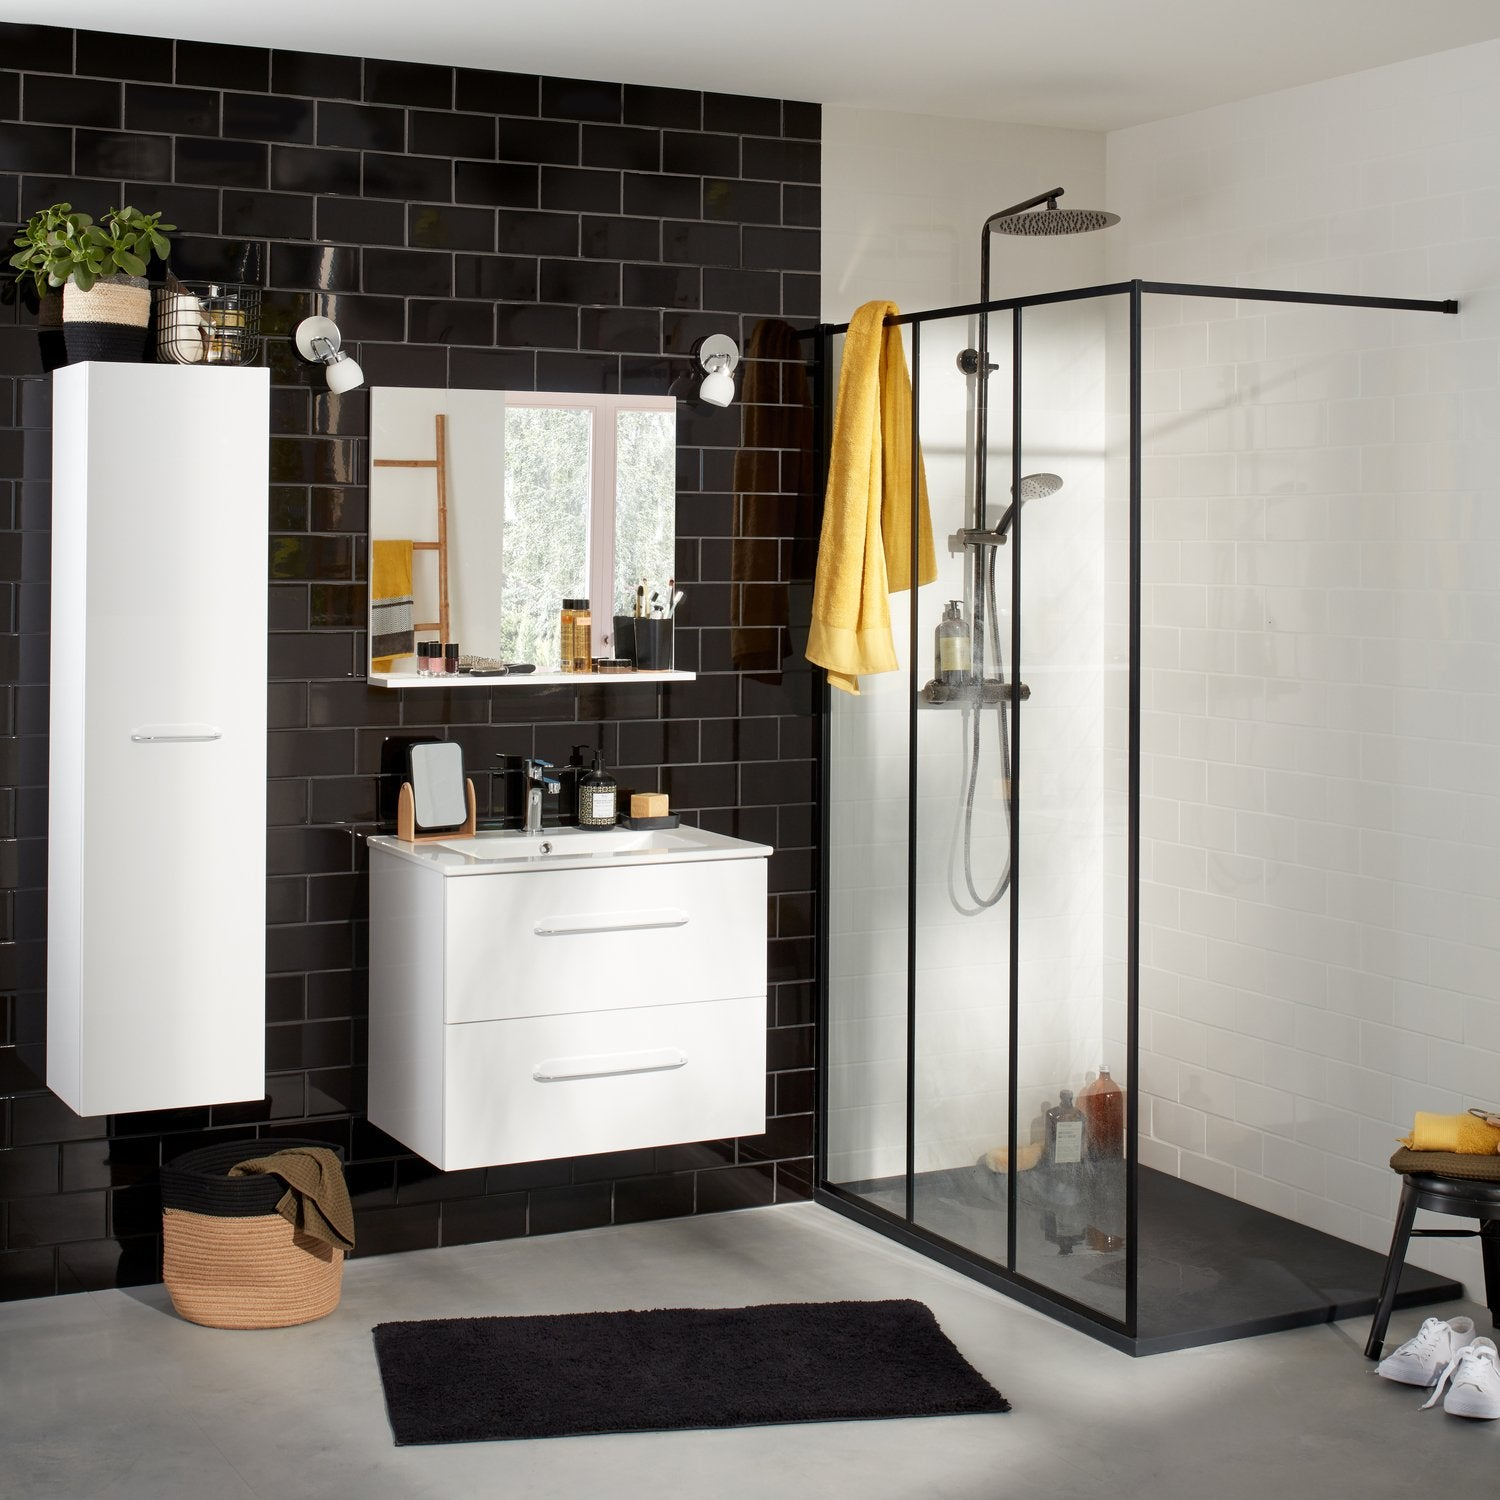 une douche l 39 italienne au style vintage industriel leroy merlin. Black Bedroom Furniture Sets. Home Design Ideas